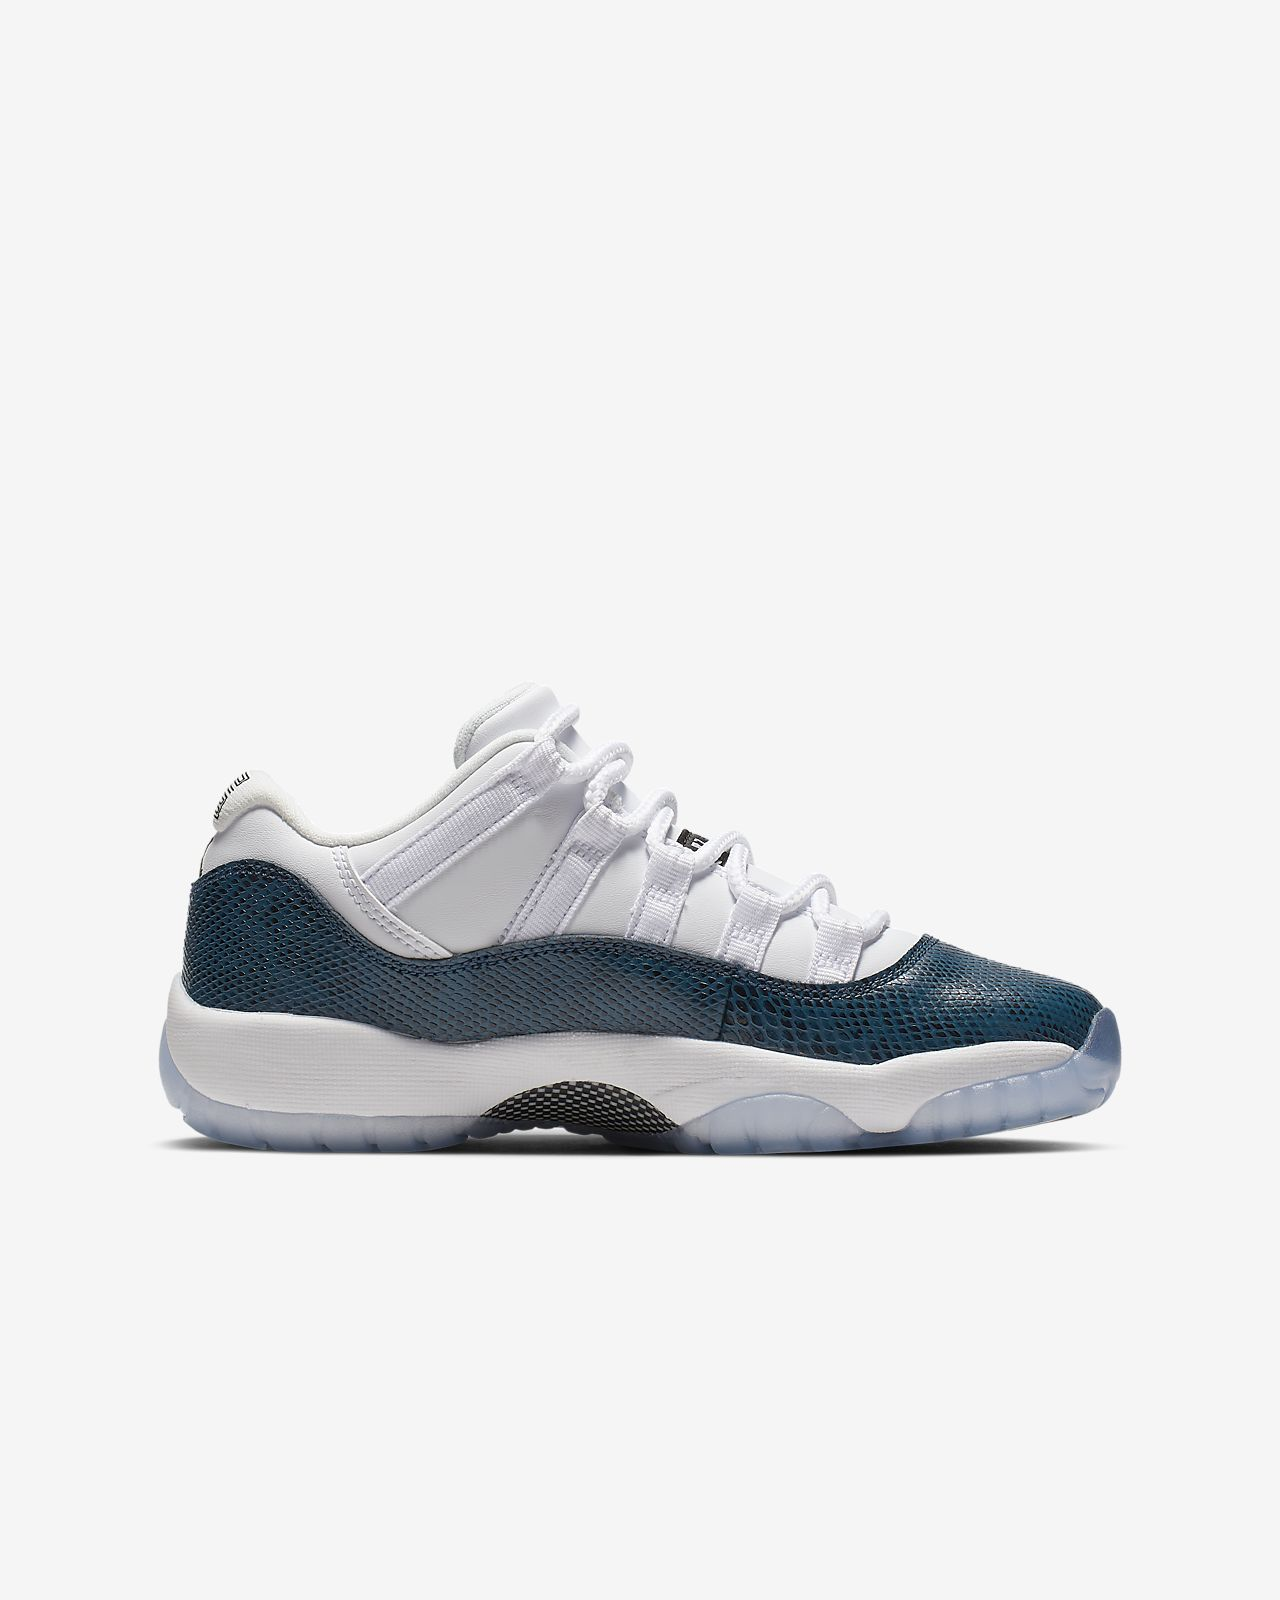 4427f91f15ad Air Jordan 11 Retro Low LE Big Kids  Shoe. Nike.com